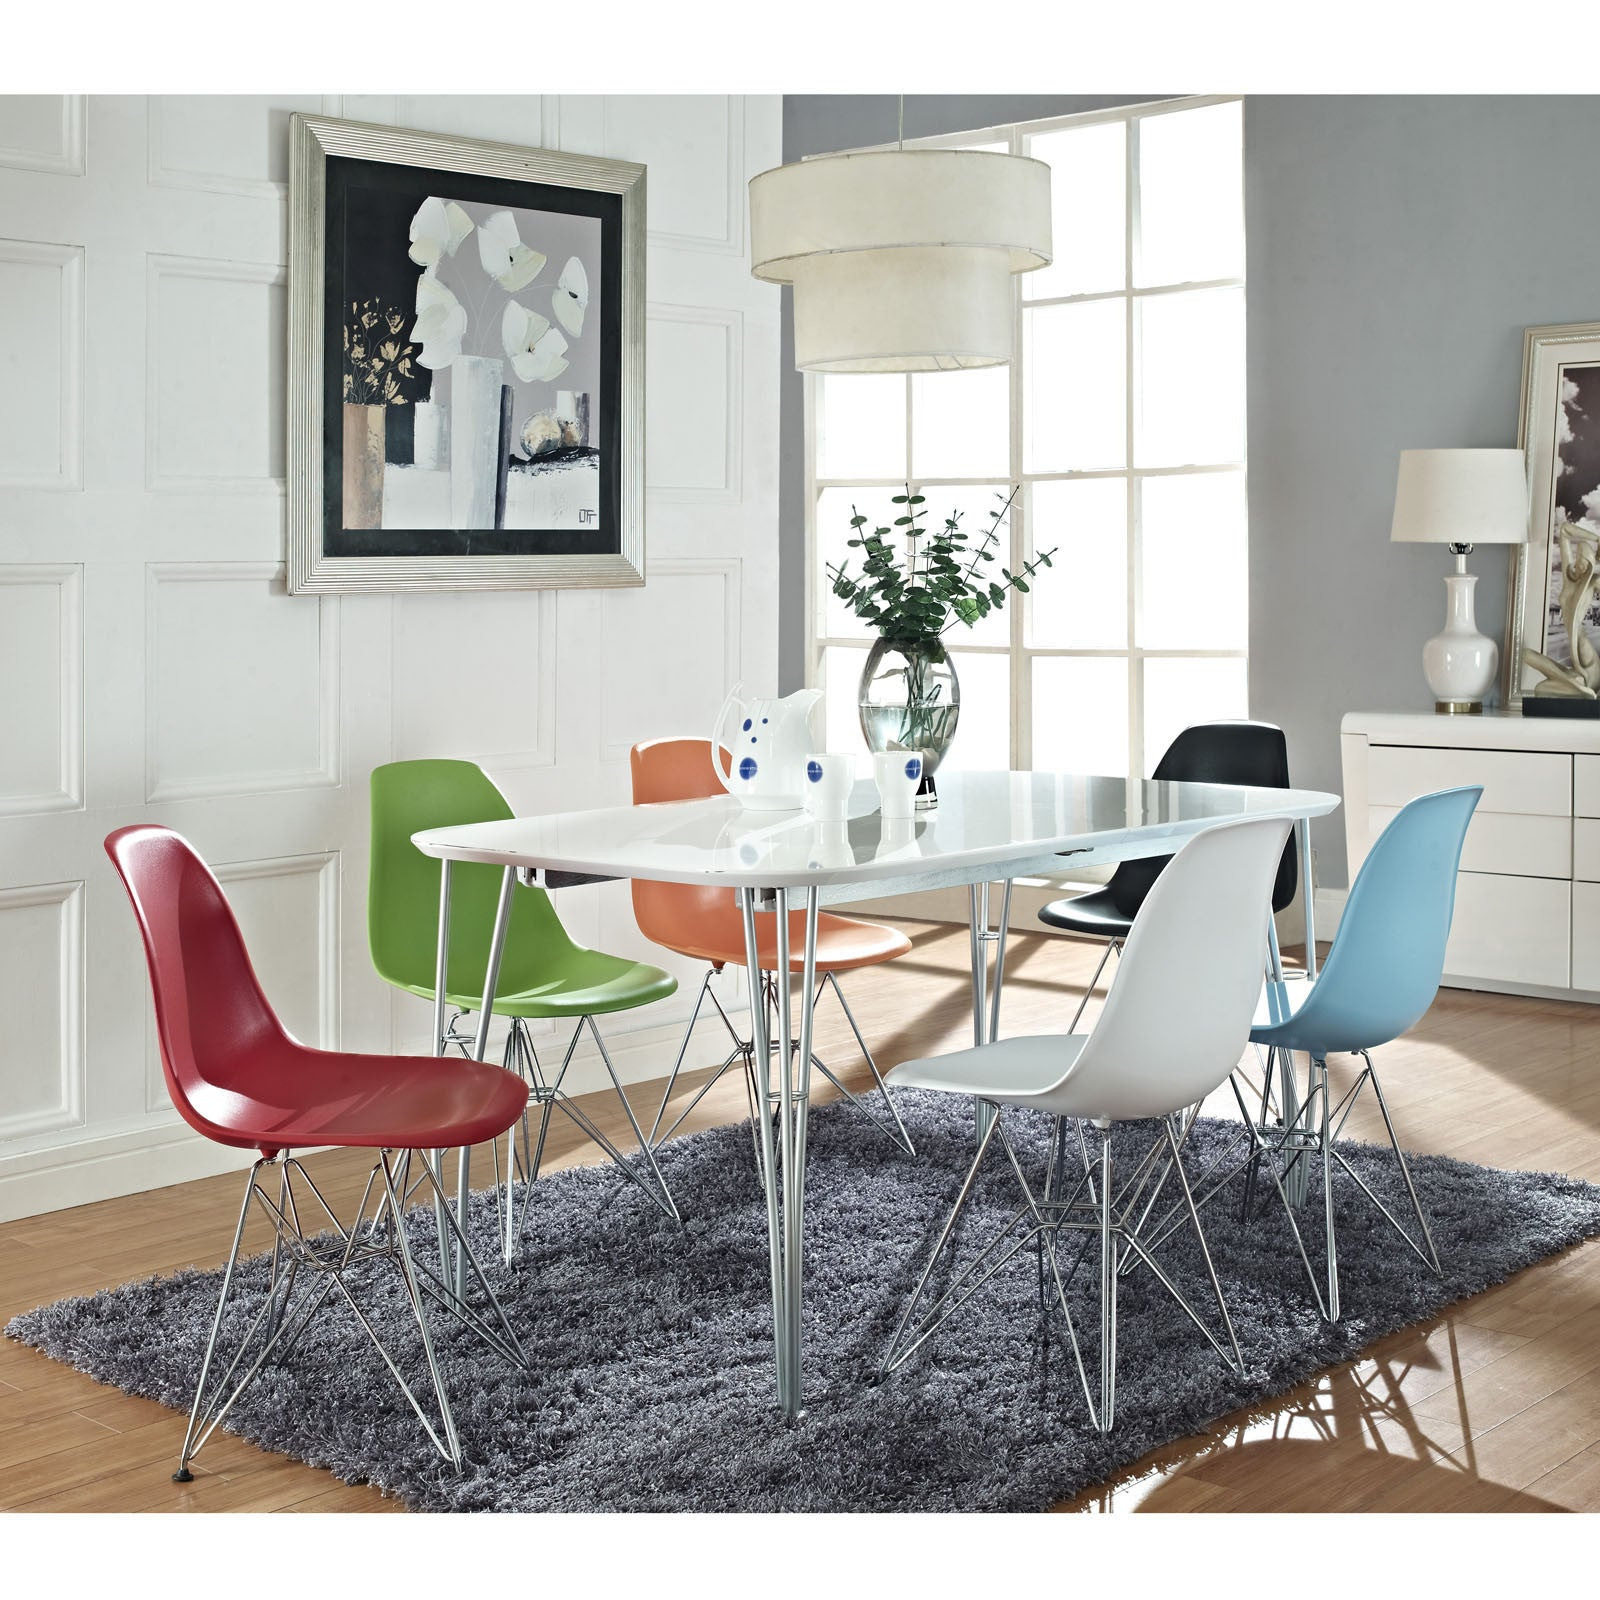 Mid Century Modern Dining chairs: Our Top 5 - EMFURN